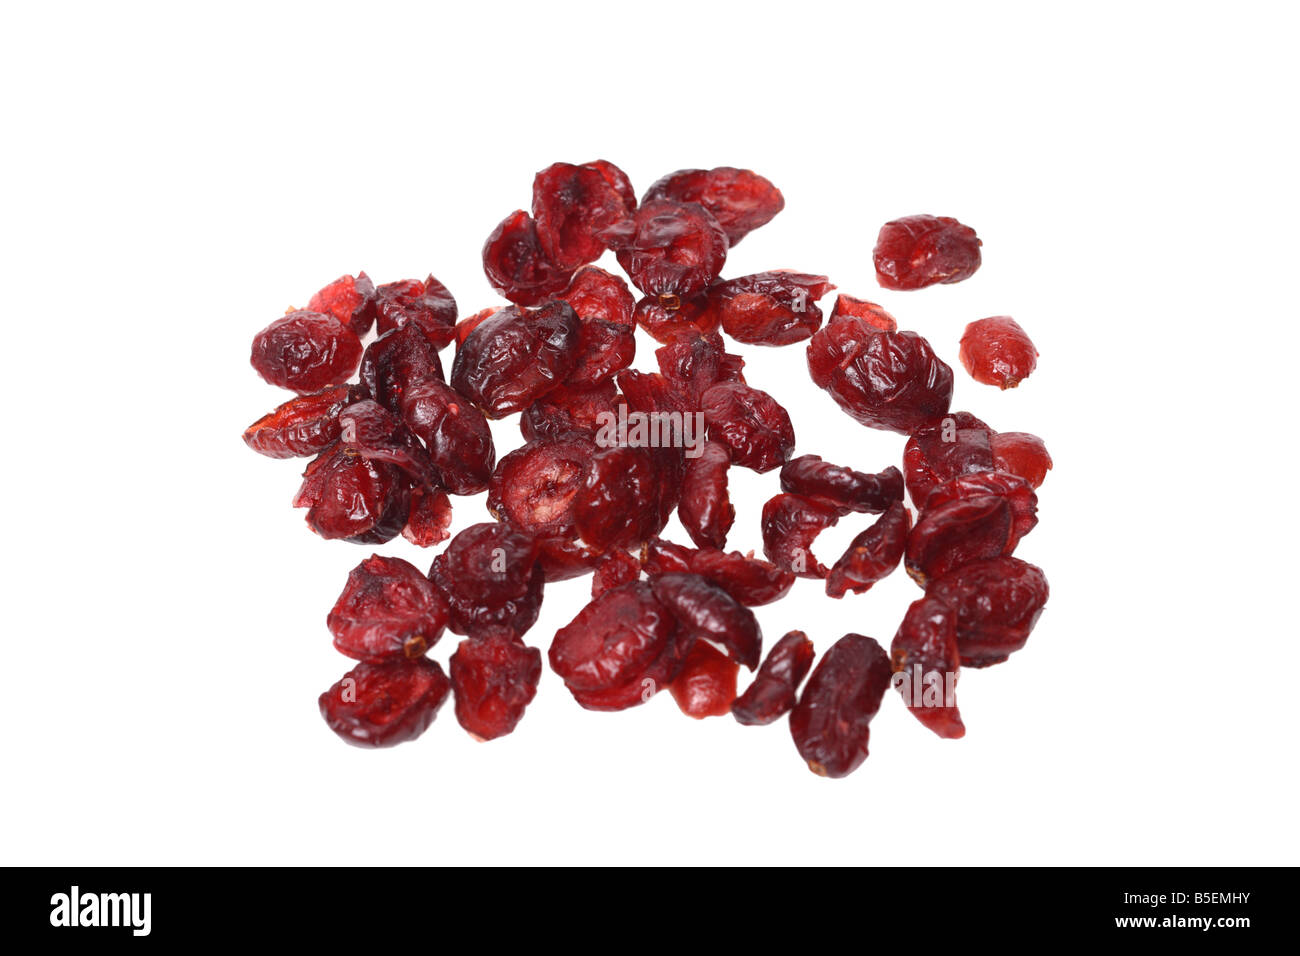 Dried cranberries cutout on white background - Stock Image